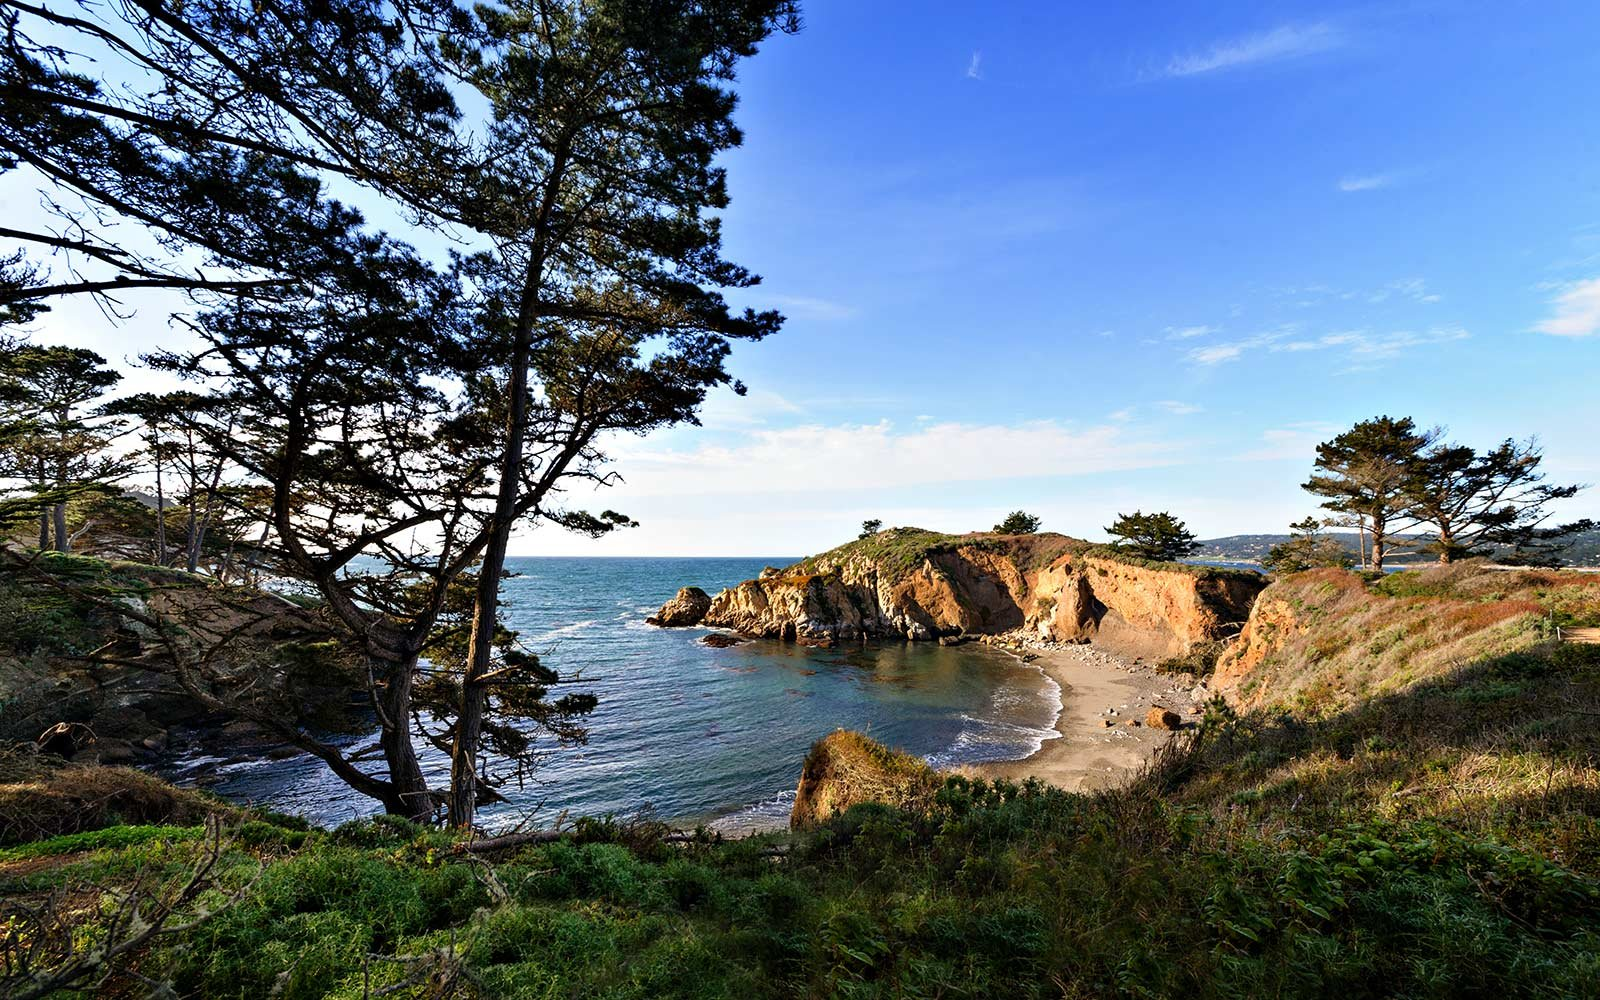 Point Lobos State Park, Carmel by the Sea, California